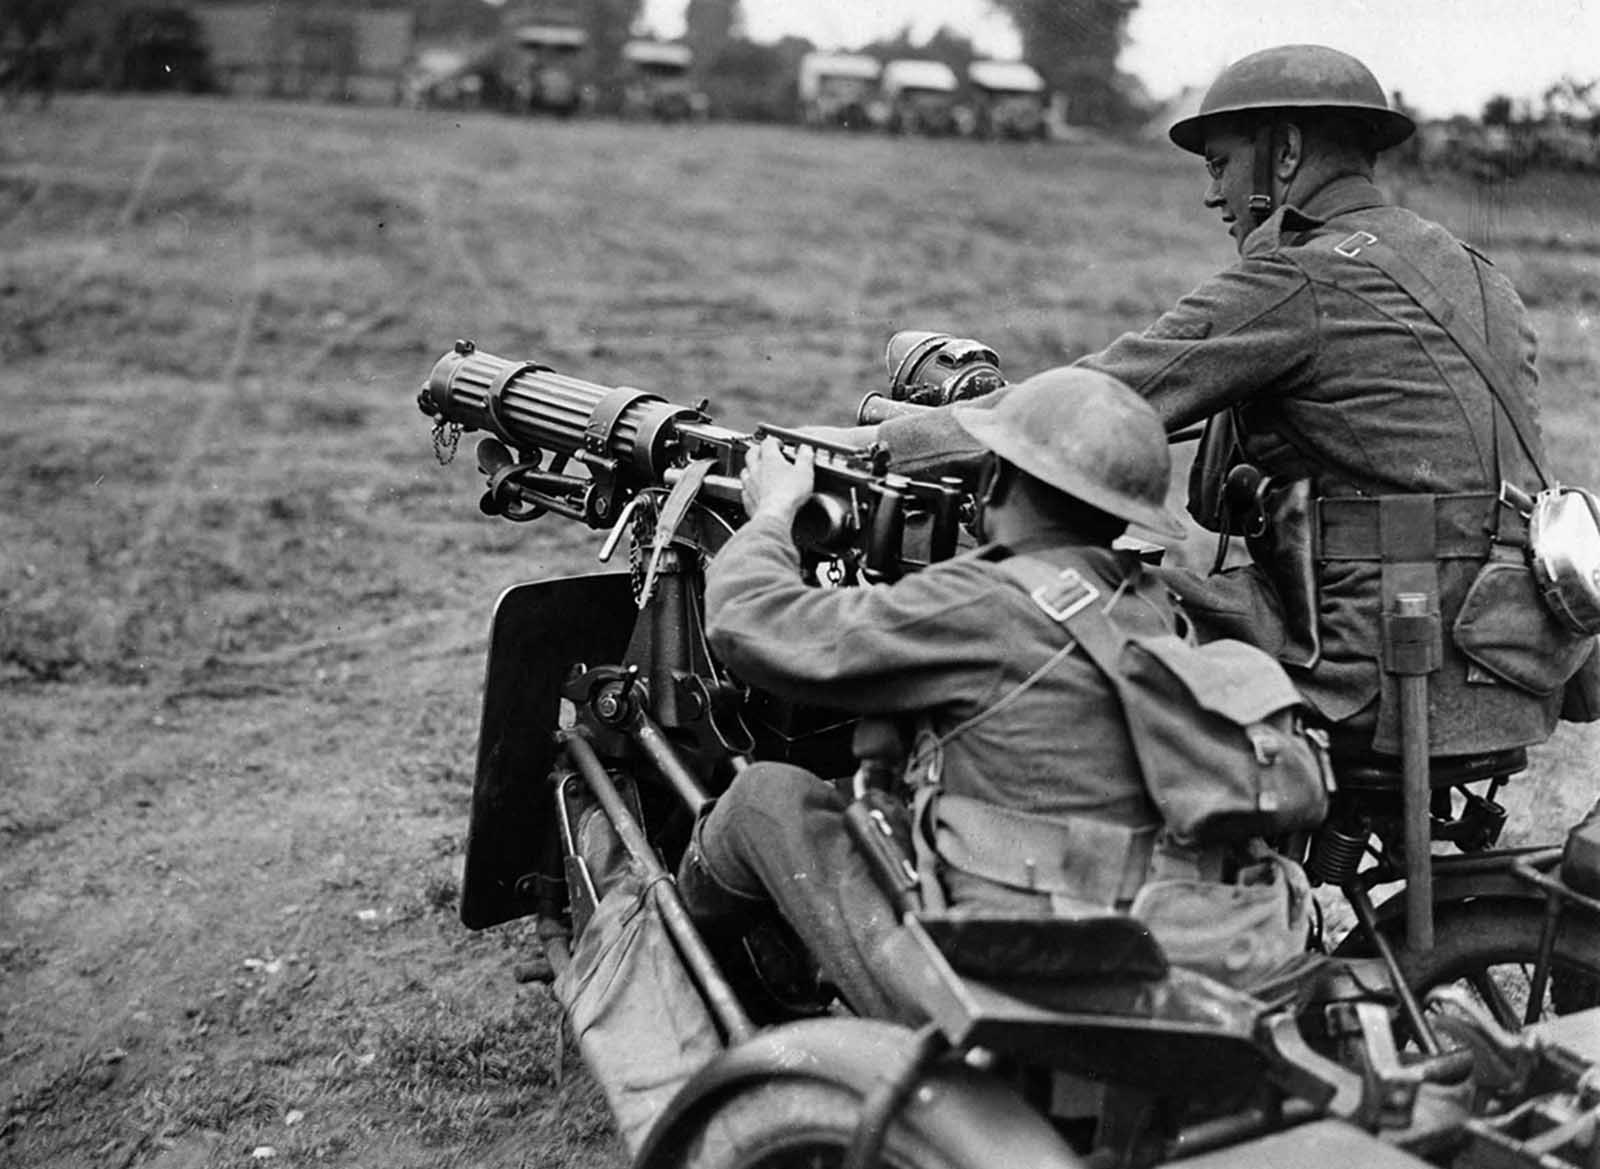 In France, a British machine-gun team. The gun, which appears to be a Vickers, is mounted on the front of a motorcycle side car.